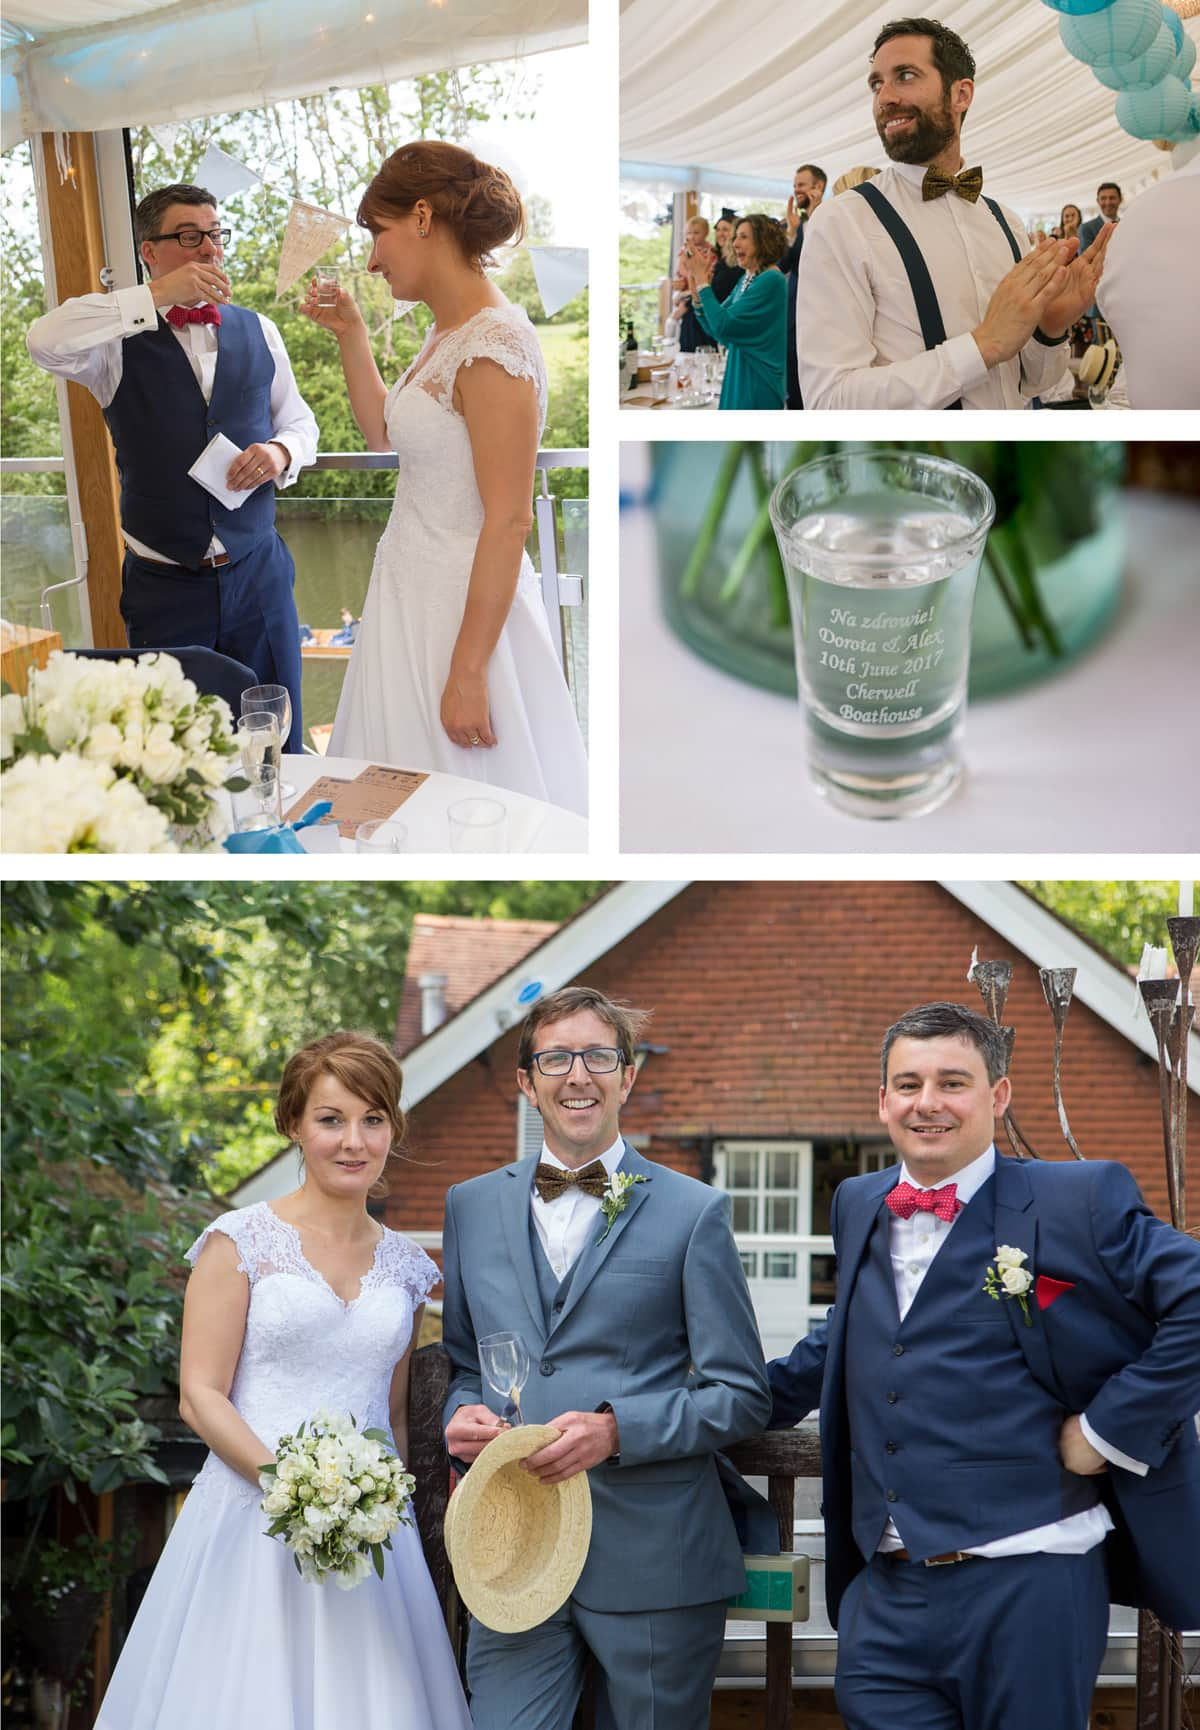 Collage of images from left: Bride and groom toast each other with vodka; guests applaud after the speeches, a close up of an engraved shot glass with vodka in it; bride, groom and best man pose together in front of the venue